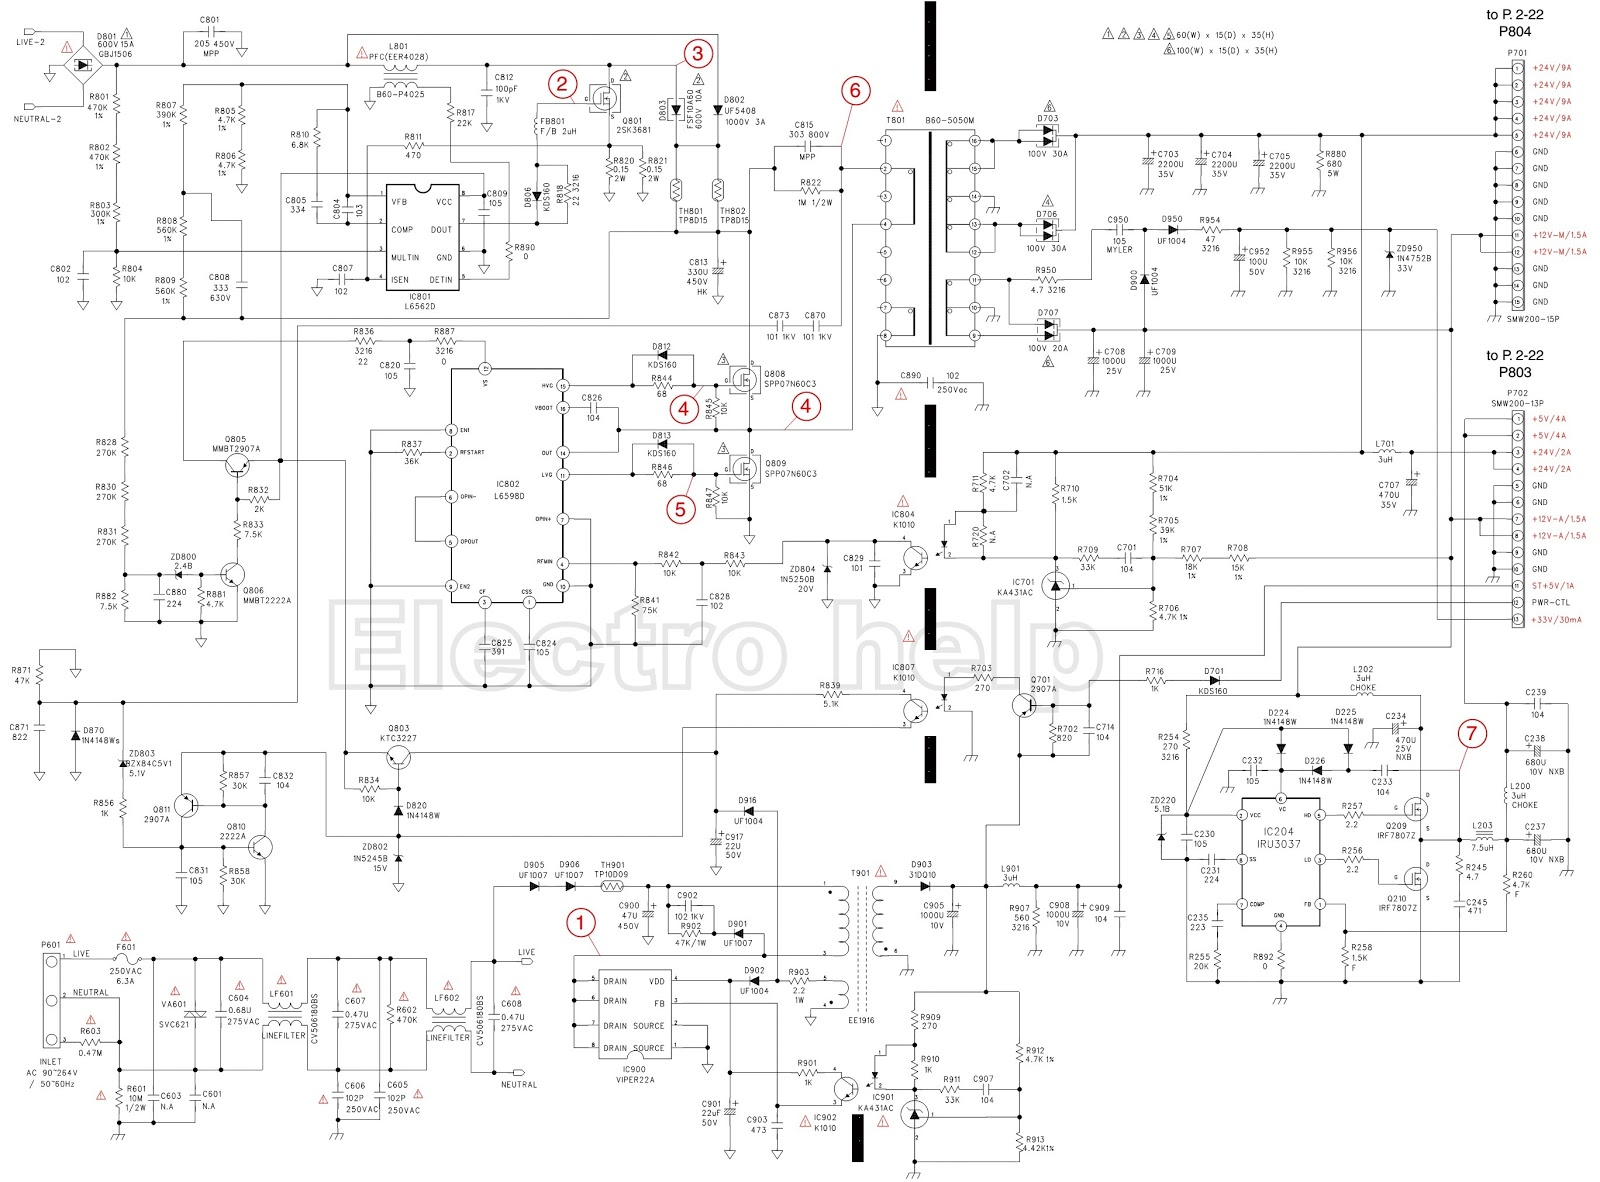 westinghouse tv schematic circuit diagram on insignia tv schematic vizio tv schematic  [ 1600 x 1182 Pixel ]